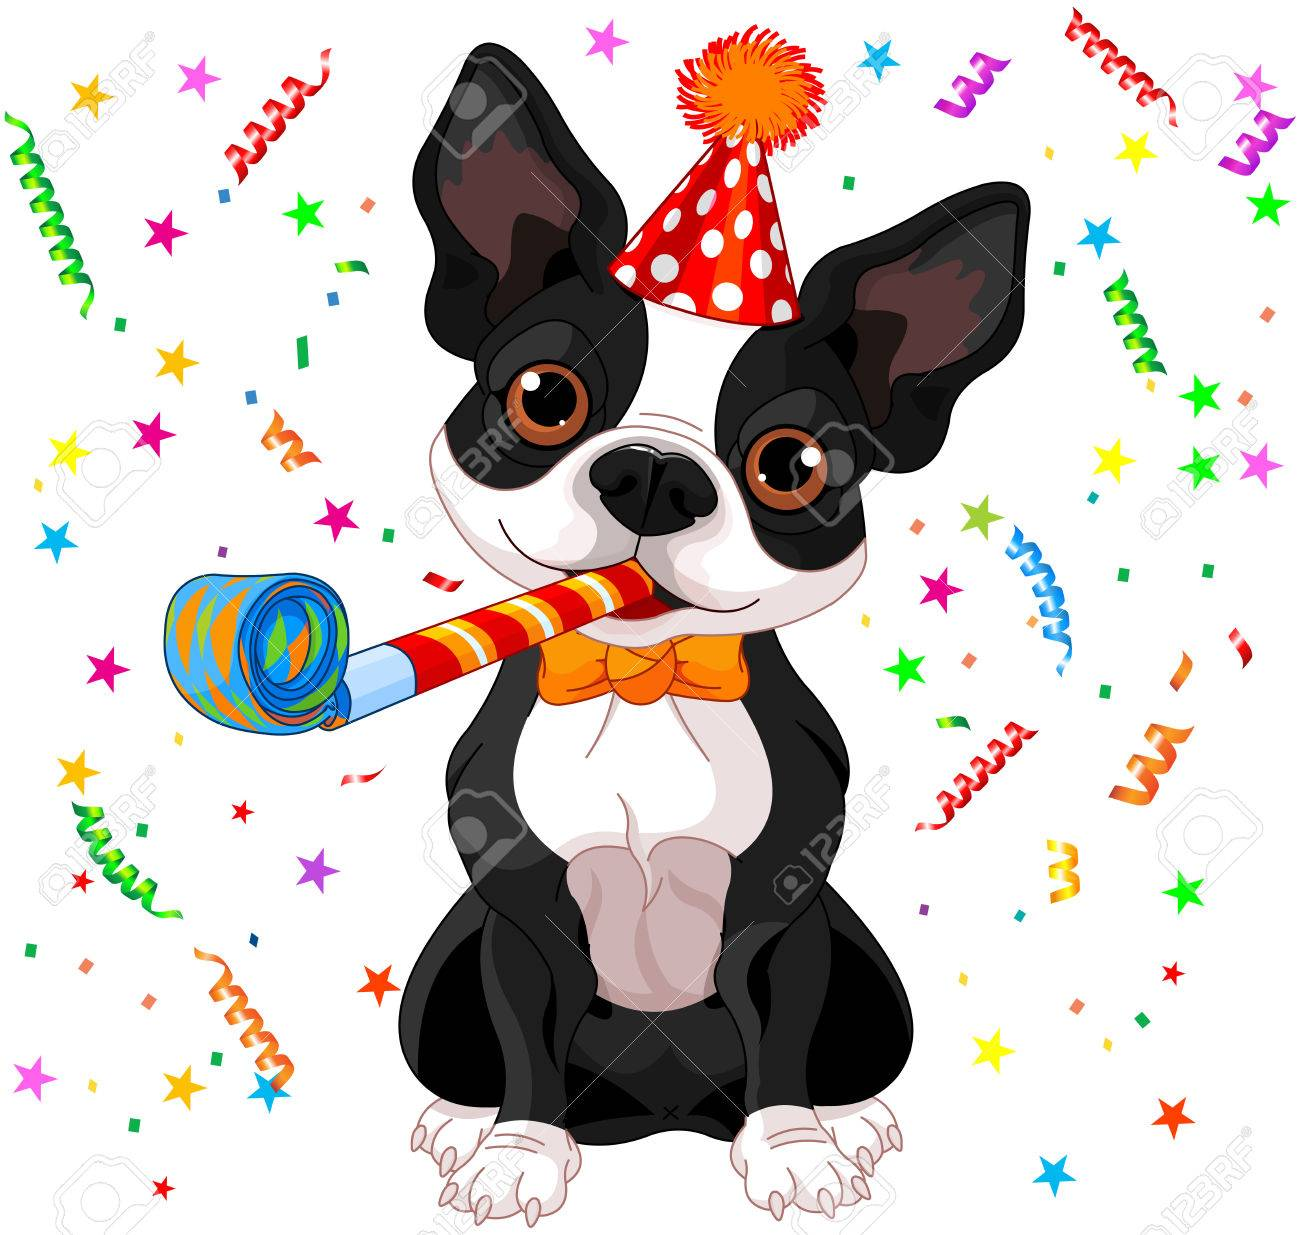 La chasse - Page 5 35588778-illustration-of-cute-boston-terrier-celebrating